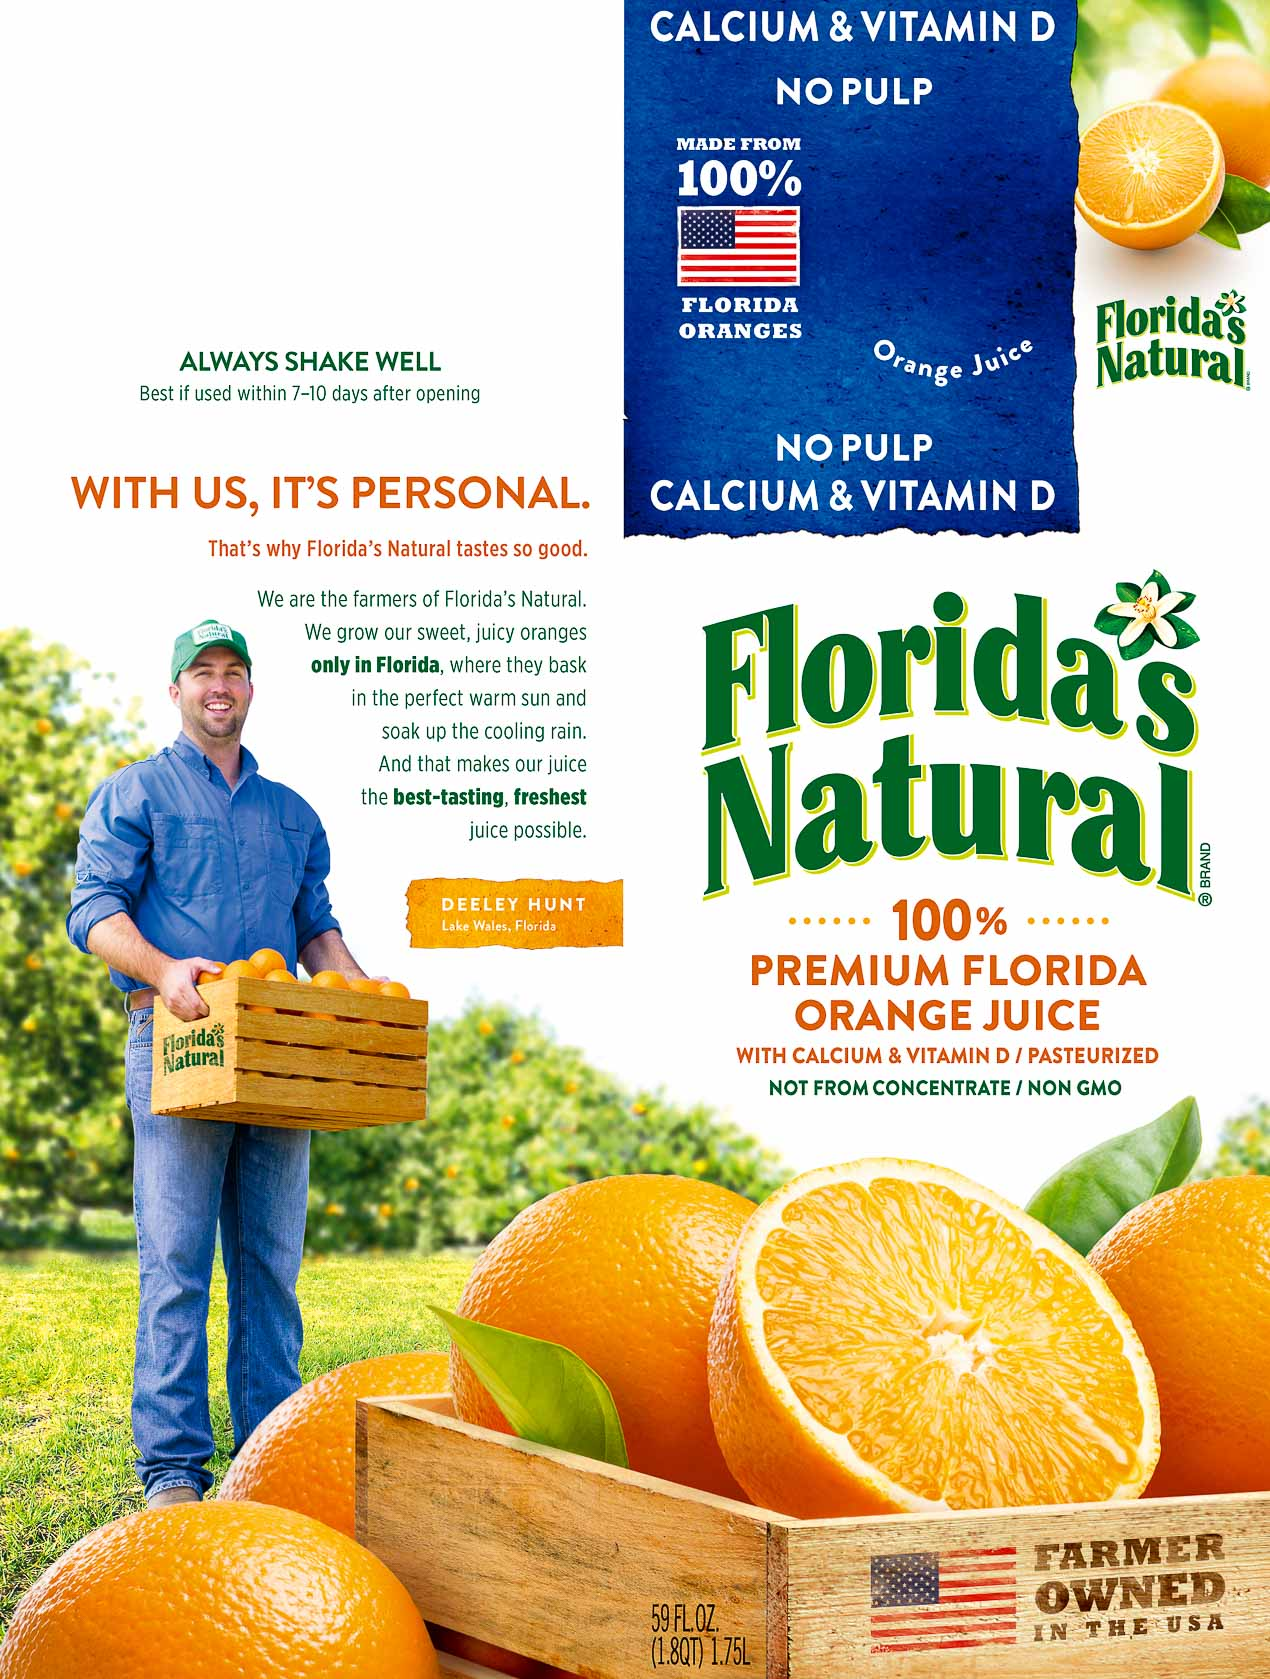 floridas_natural_CalciumNoPulpOJ